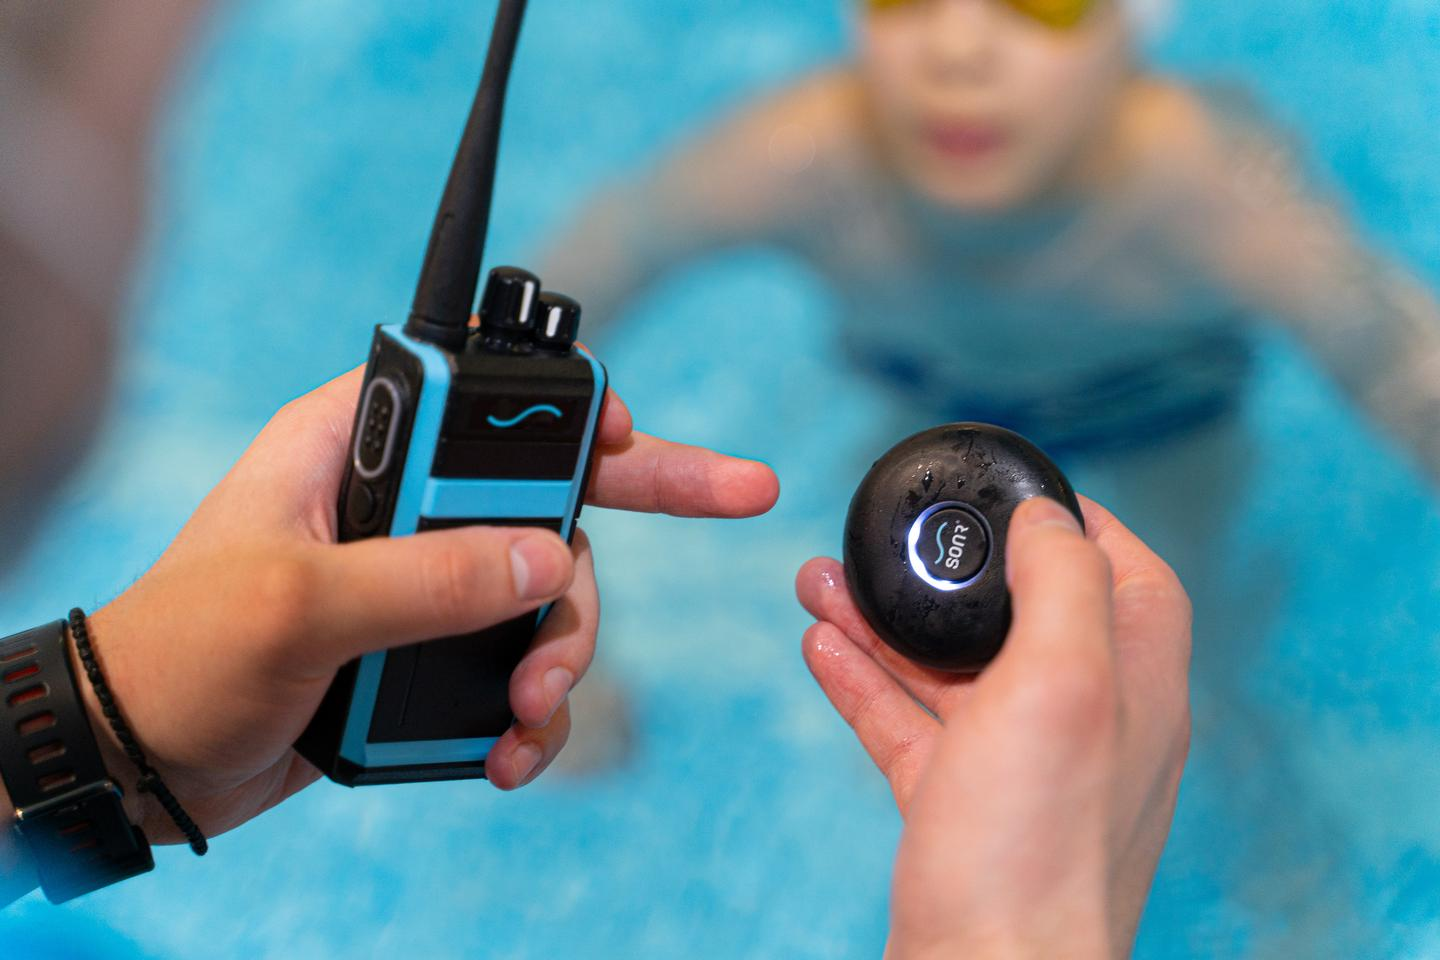 The Sonr receiver (right) is IPX8 waterproof – it can be submerged deeper than 1 m/3.3 ft) – and has an antibacterial coating